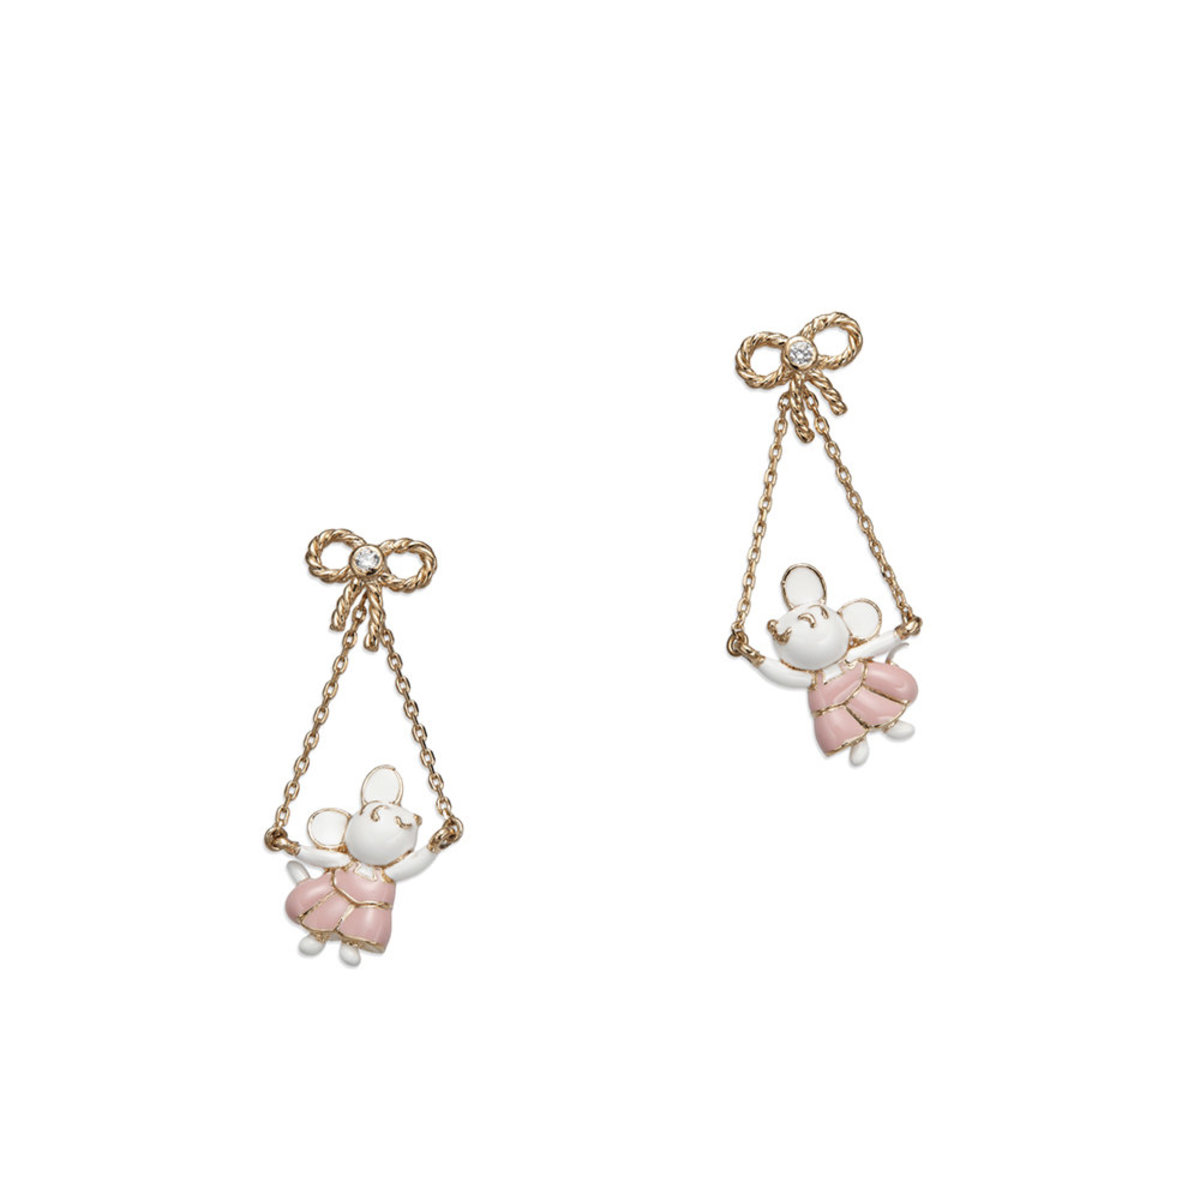 Petit Ami: gold plating, Swarovski crystal, enamel, 3-D ribbon & dancing mouse pierced earrings (can be worn in 2 ways)